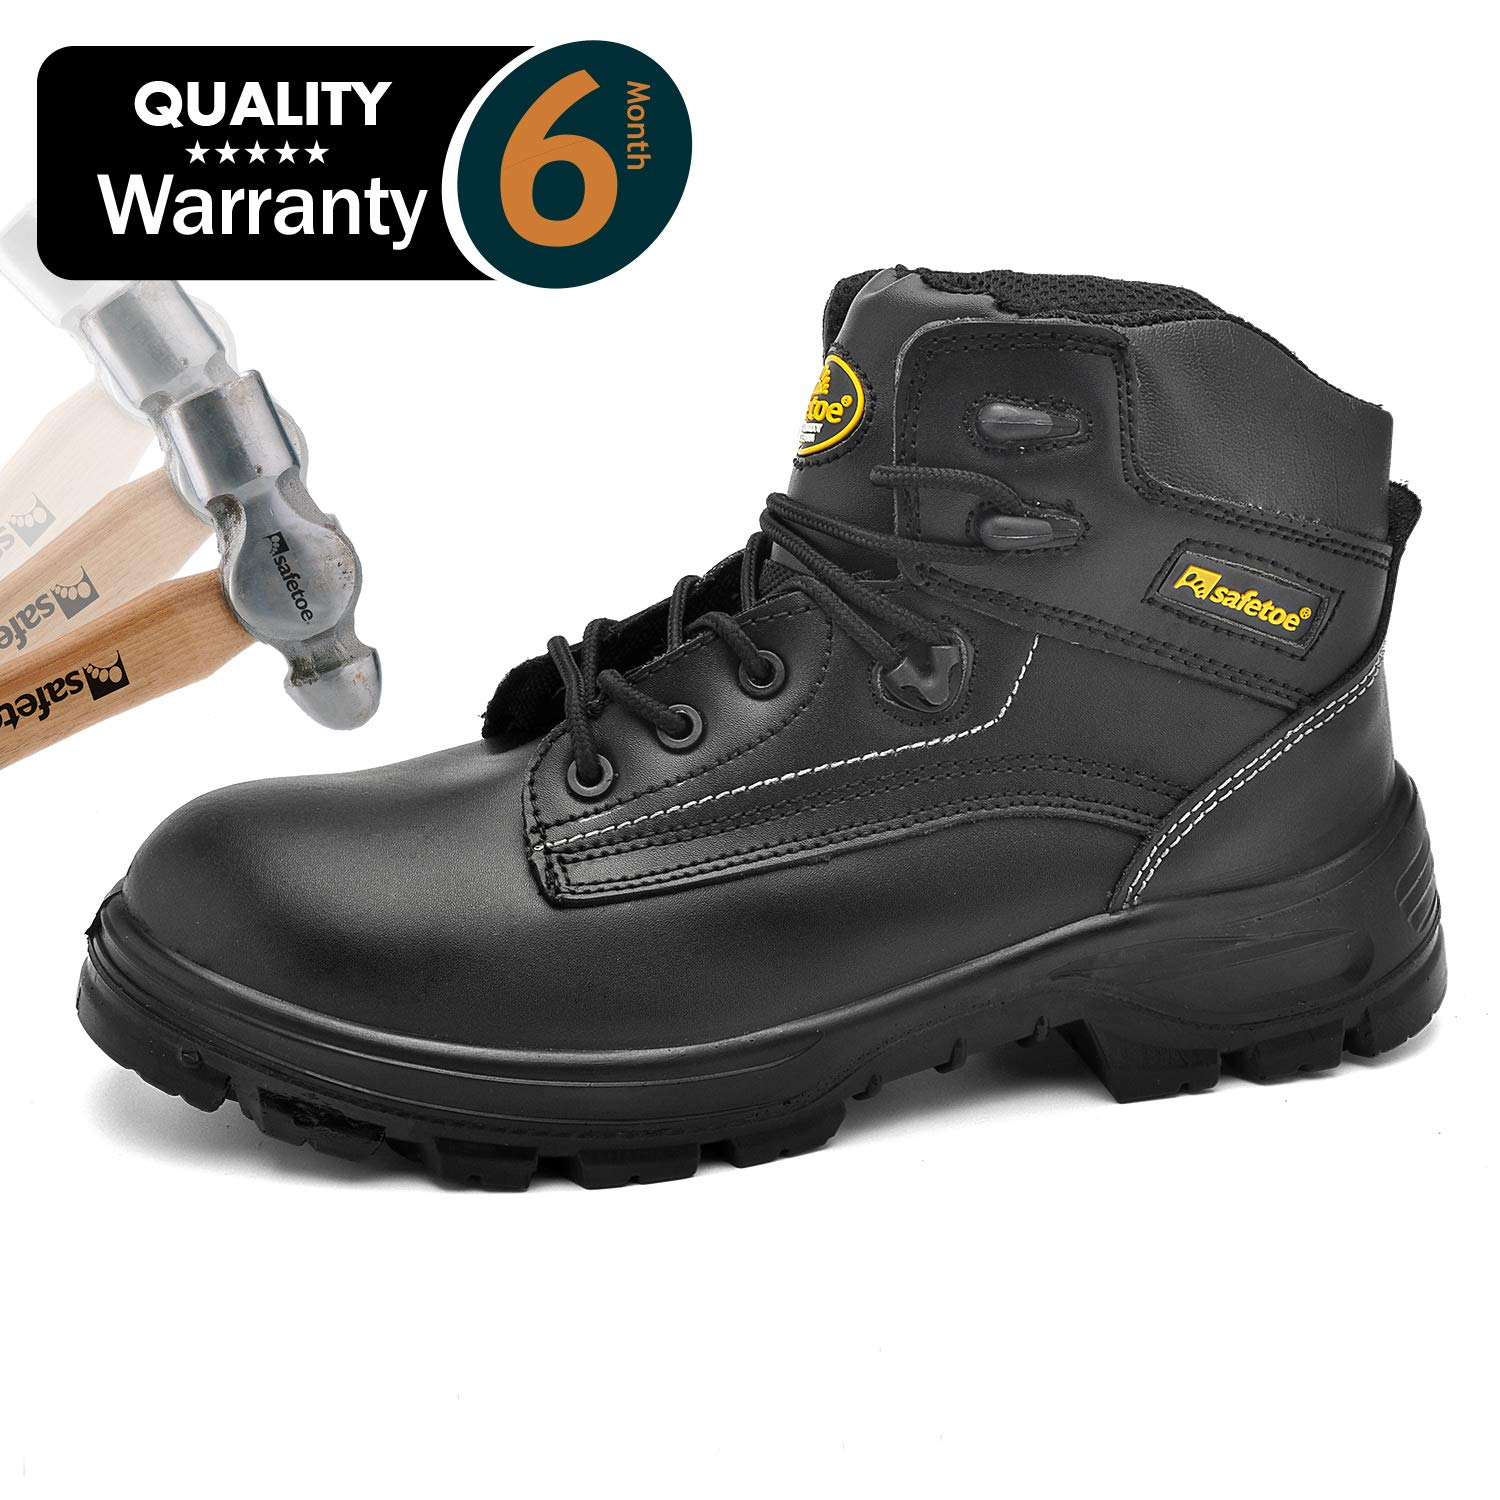 SAFETOE Mens Safety Boots Work Shoes - M8356B Black Waterproof Leather Work Boots Steel Toe Safety Shoes by SAFETOE